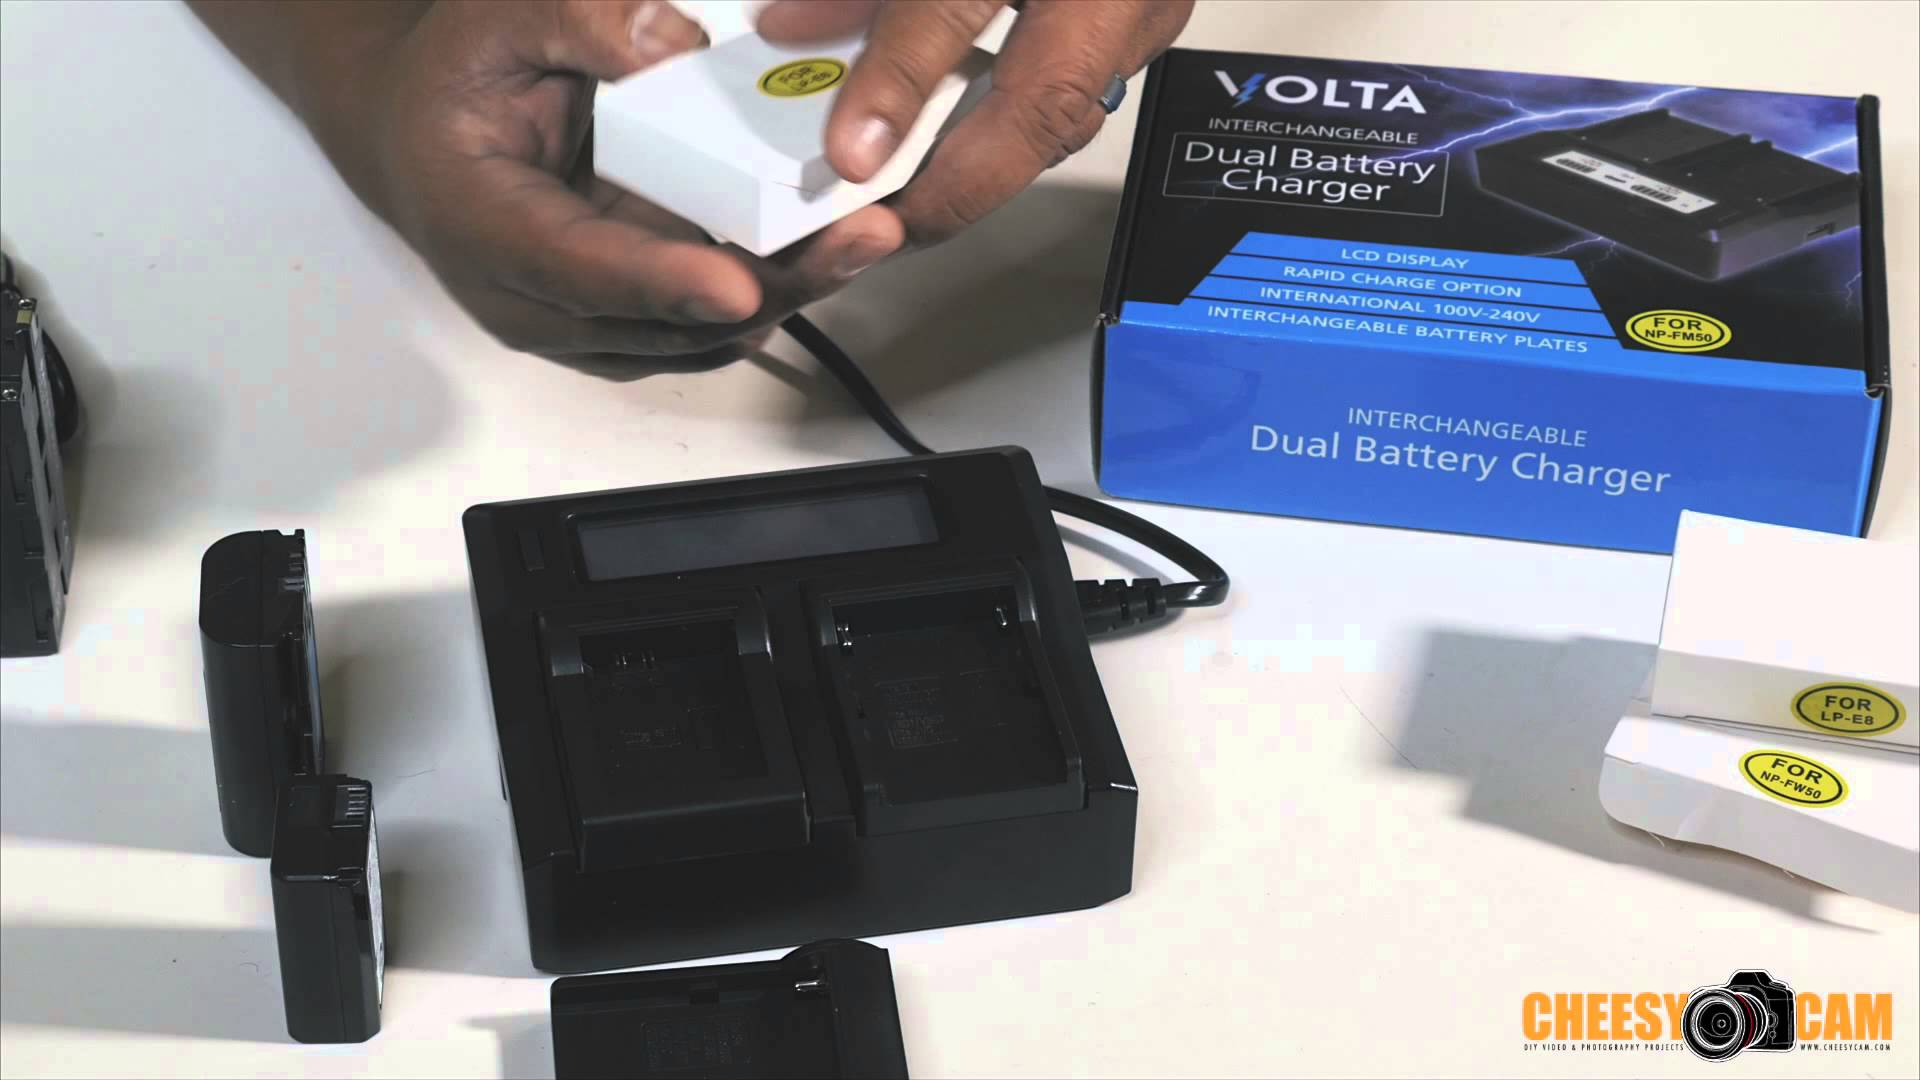 Volta Dual Battery Charger With Interchangeable Charging